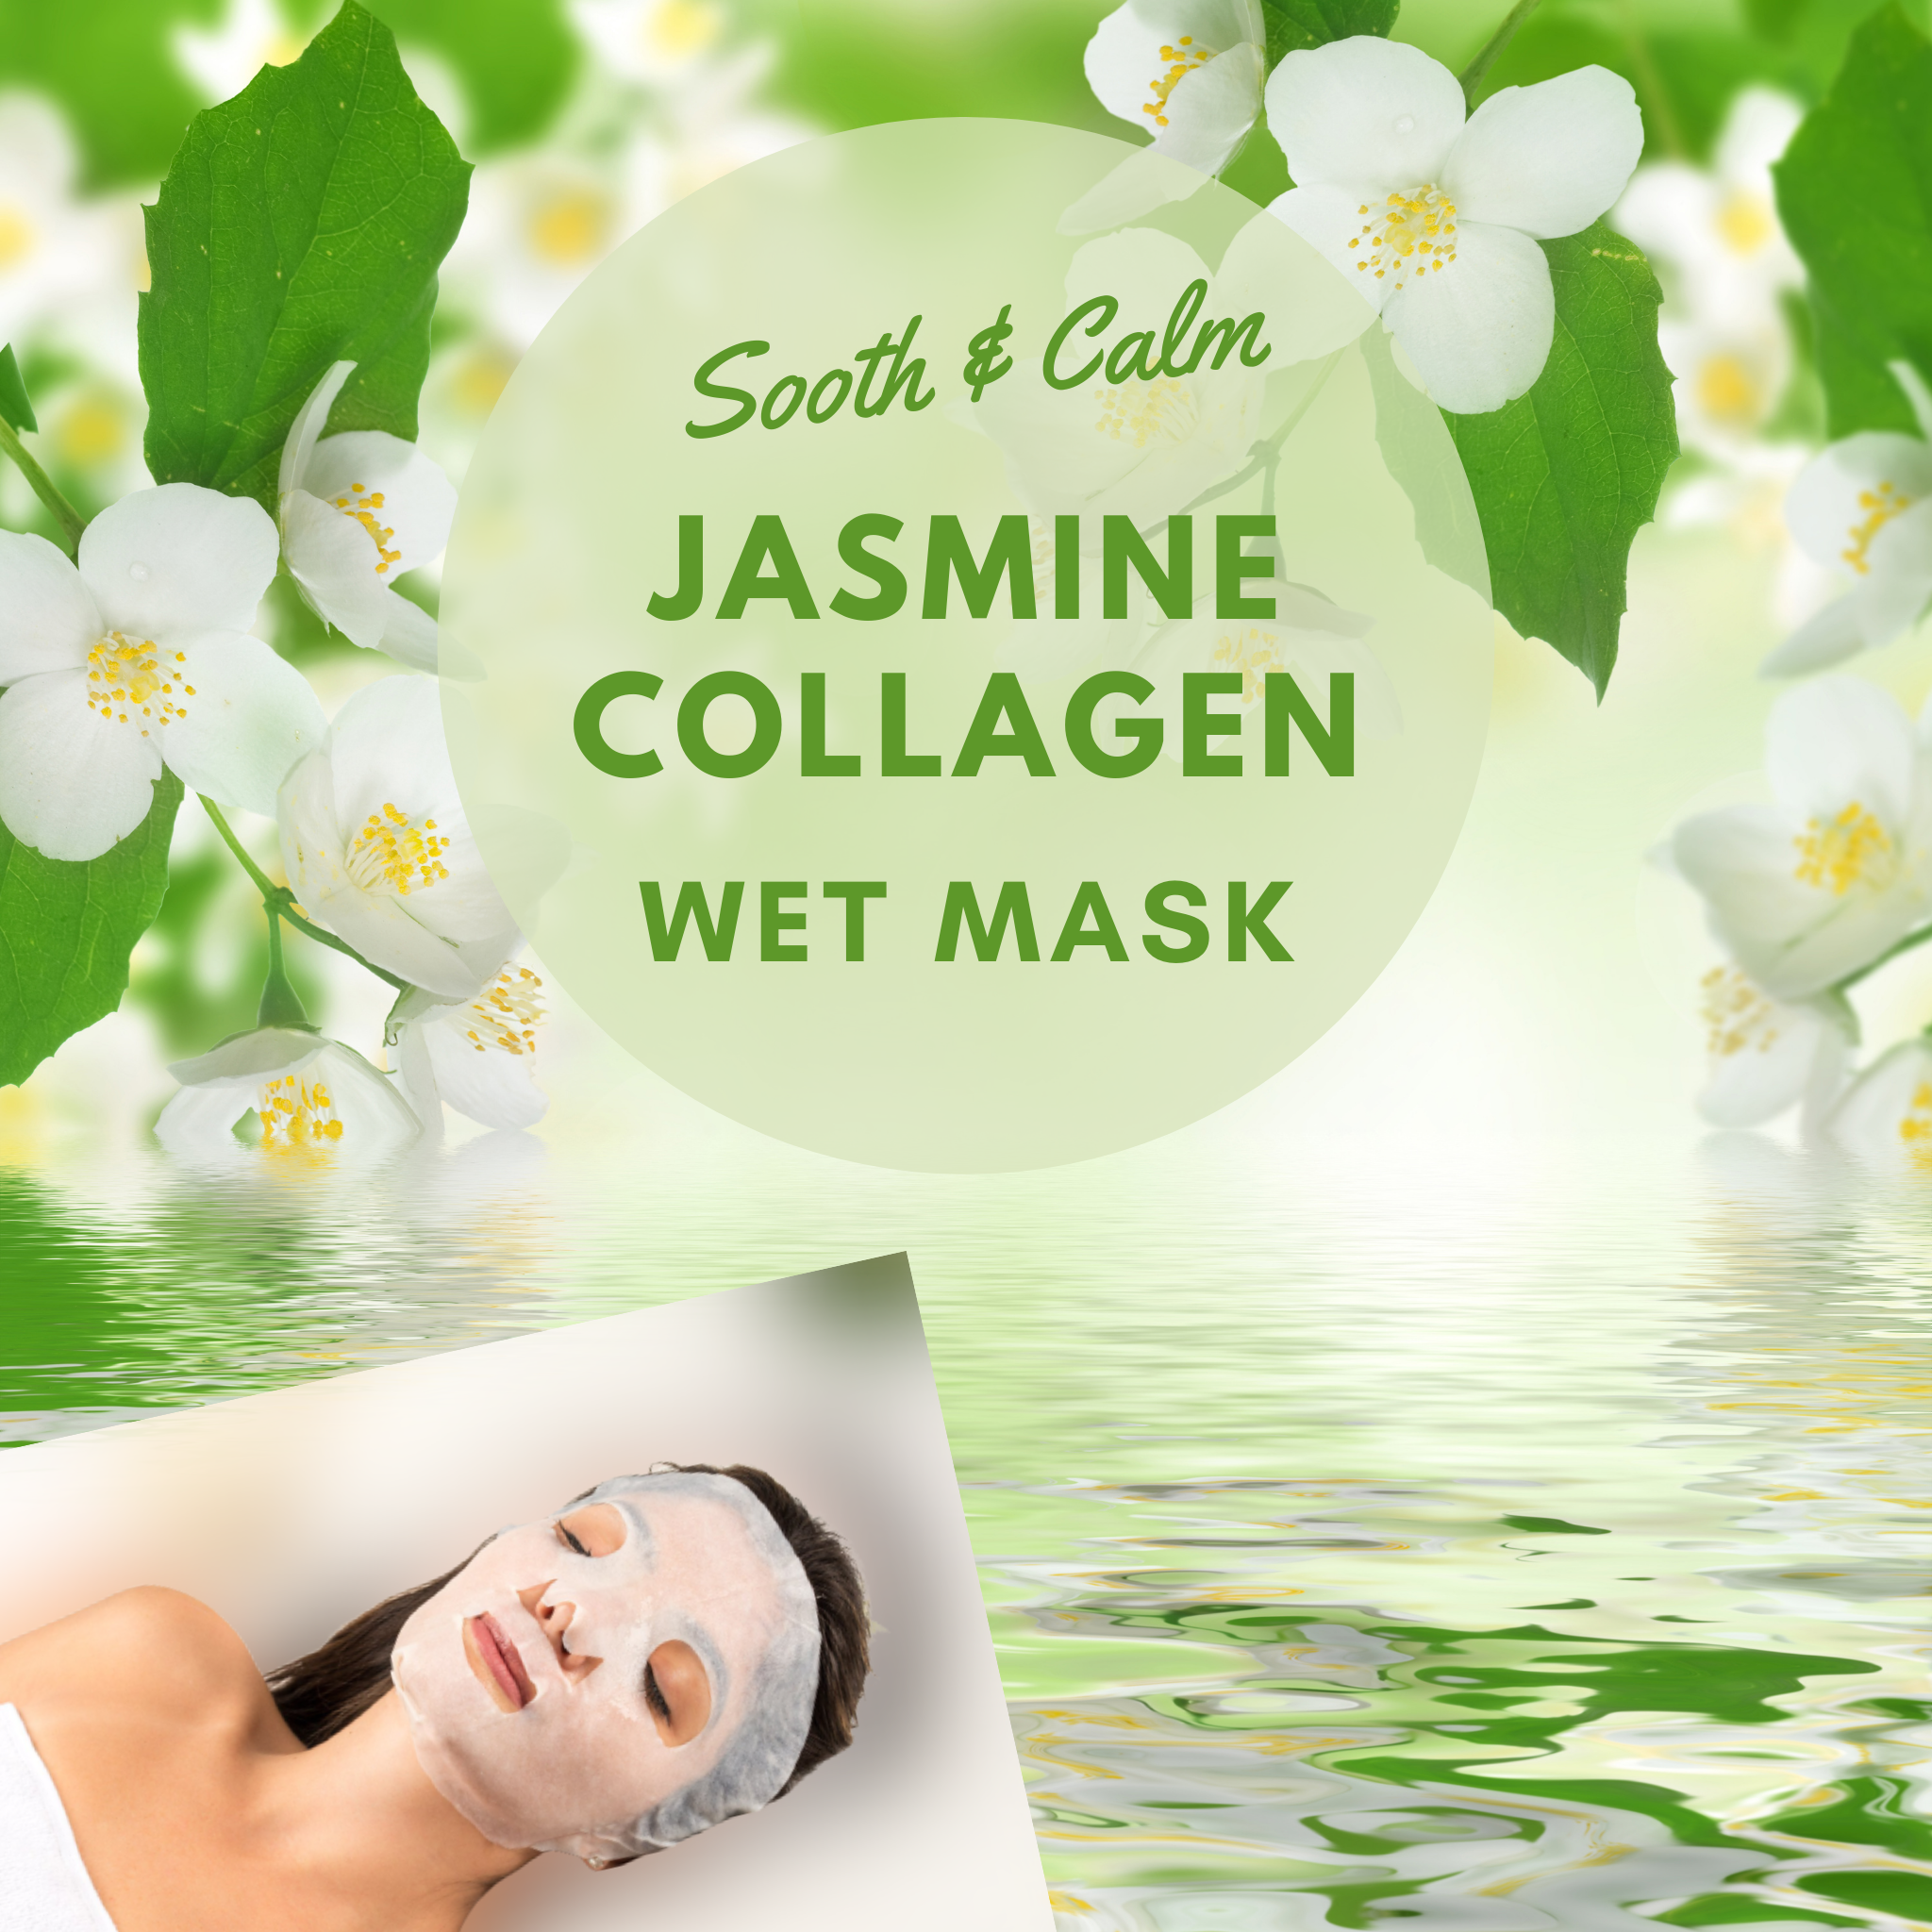 Facial Masks for Sale | Jasmine Collagen Wet Mask